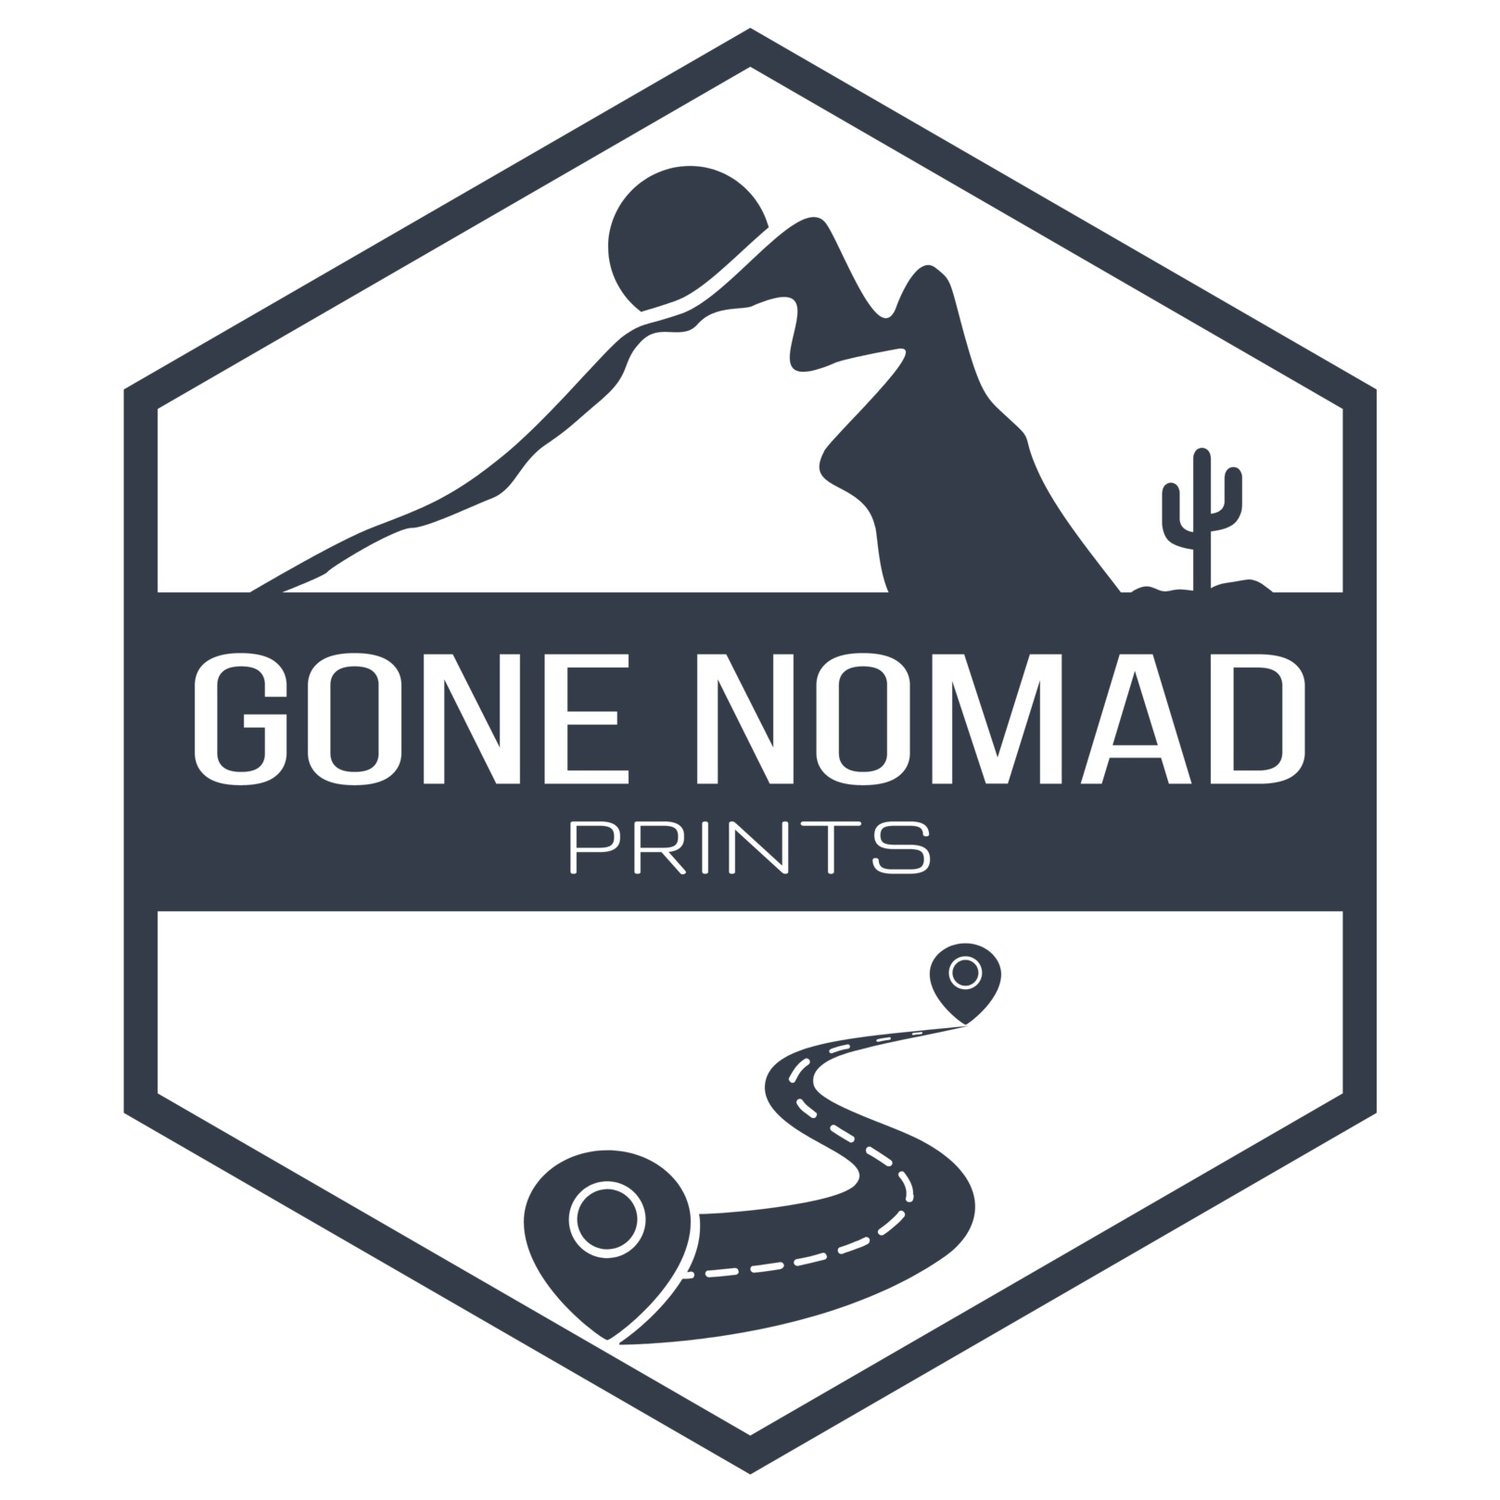 Gone Nomad Prints